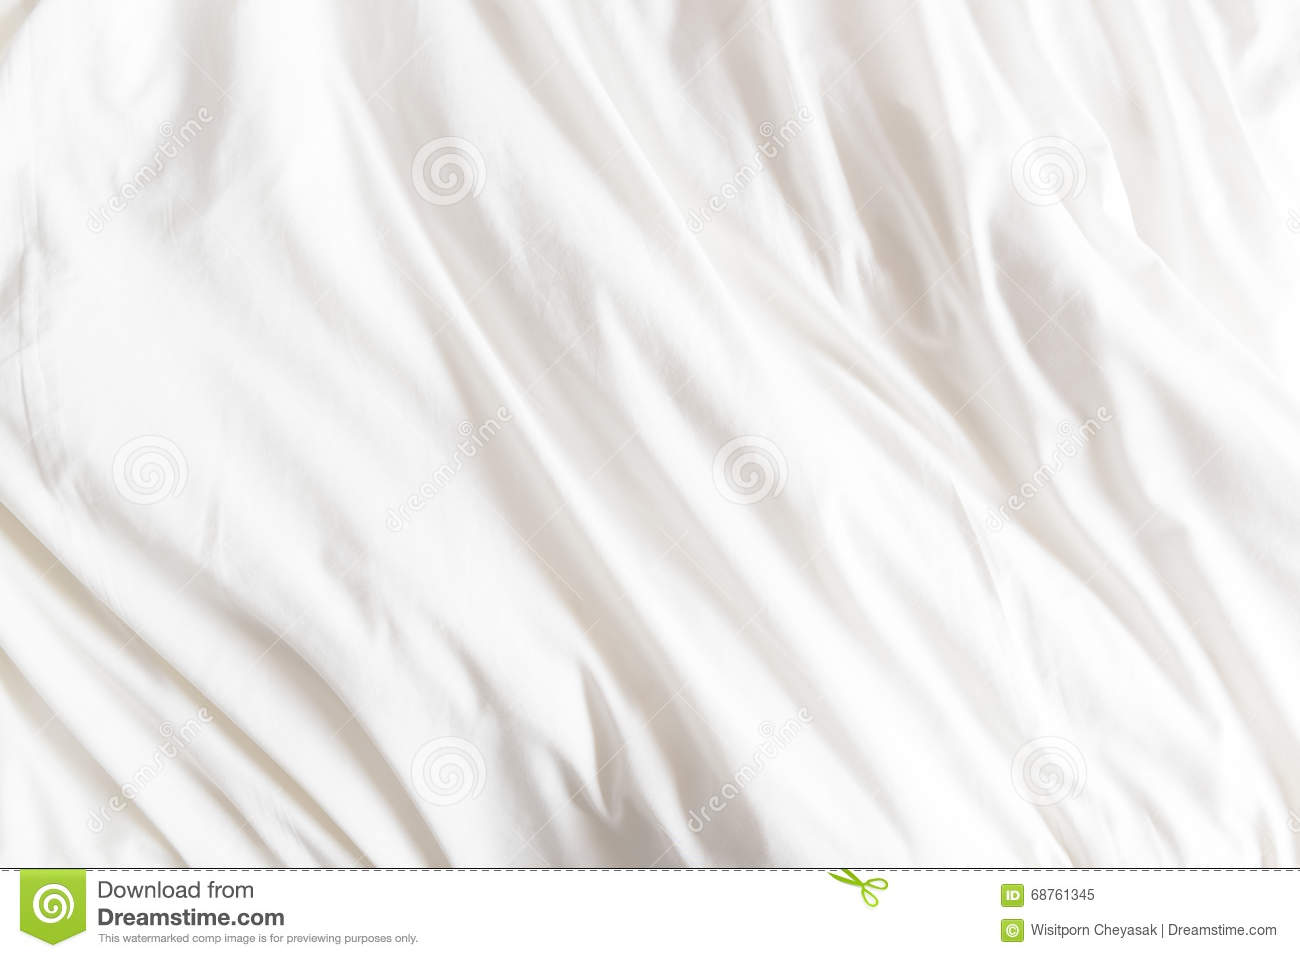 Rumpled bed sheet - Top View Of Wrinkles On An Unmade Bed Sheet Royalty Free Stock Photo